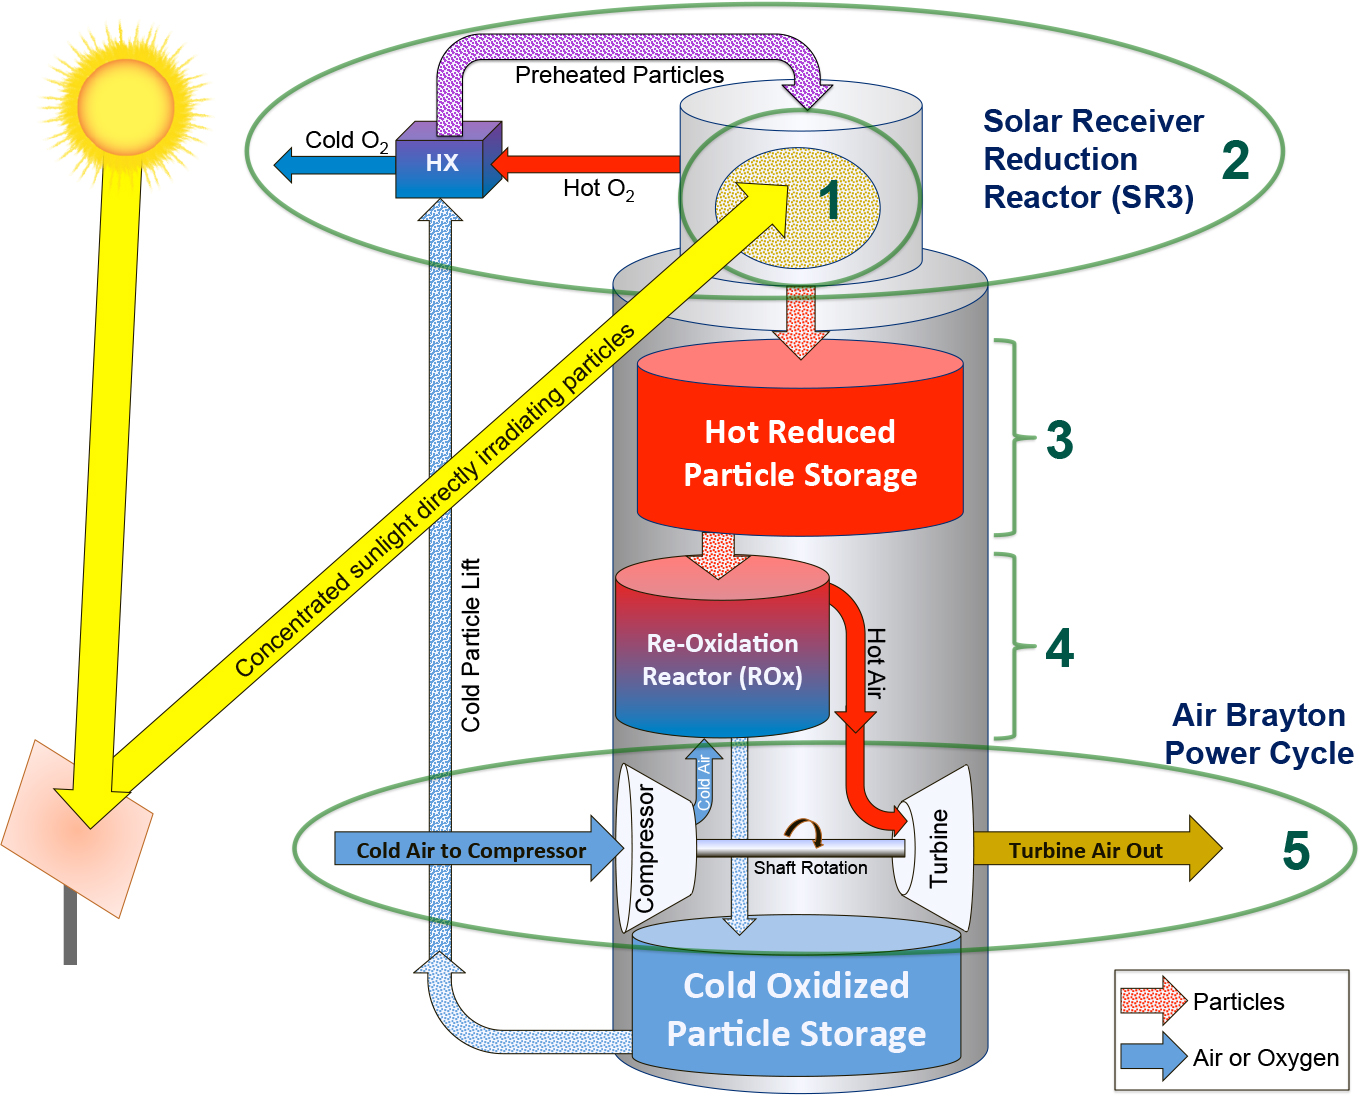 A schematic of the proposed reactor system. The metal oxides (MOs) [1] absorb/capture concentrated solar energy in [2]. Because the energy is captured in chemical bonds, it can be stored for long periods [3] and released at need [4] for electricity generation [5]. MOs are particularly suitable for the Air Brayton power cycle because of their high temperature range and the use of pressurized air, in which the air is both the reactant for the reoxidation step and the heat-transfer-fluid input directly into the Brayton-cycle turbine.